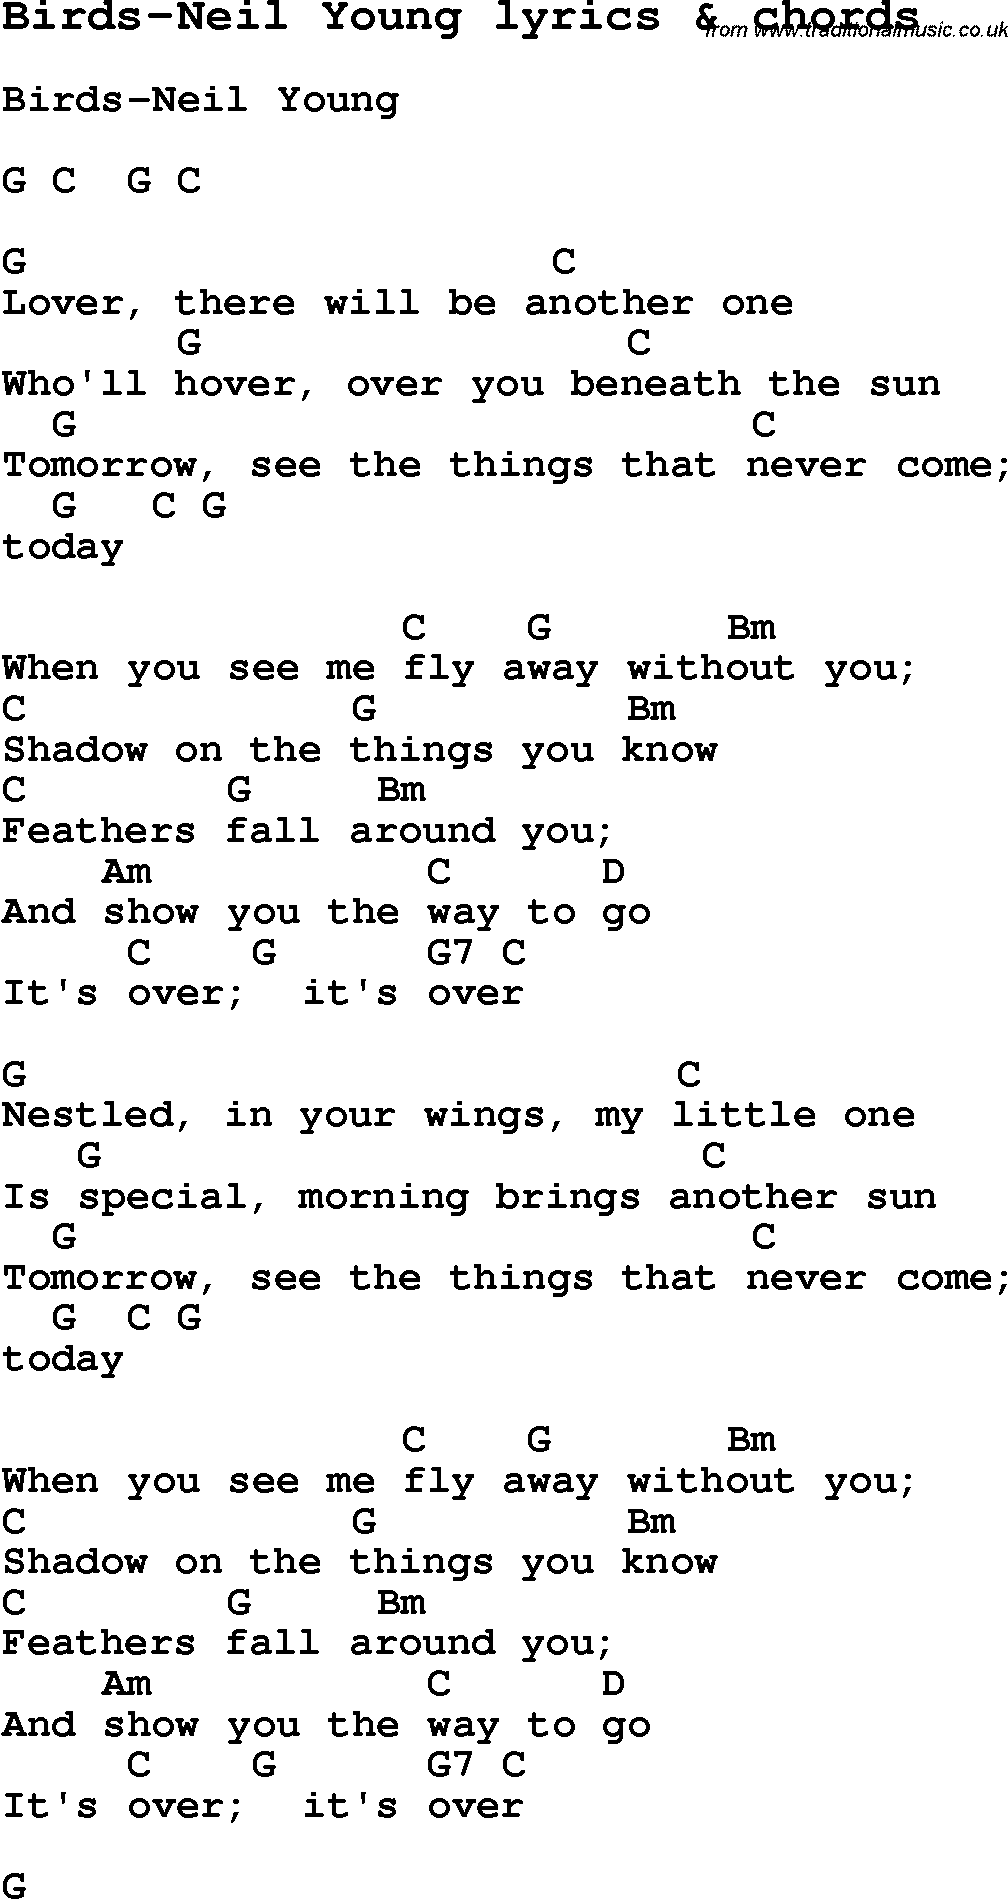 Love Song Lyrics for:Birds-Neil Young with chords.